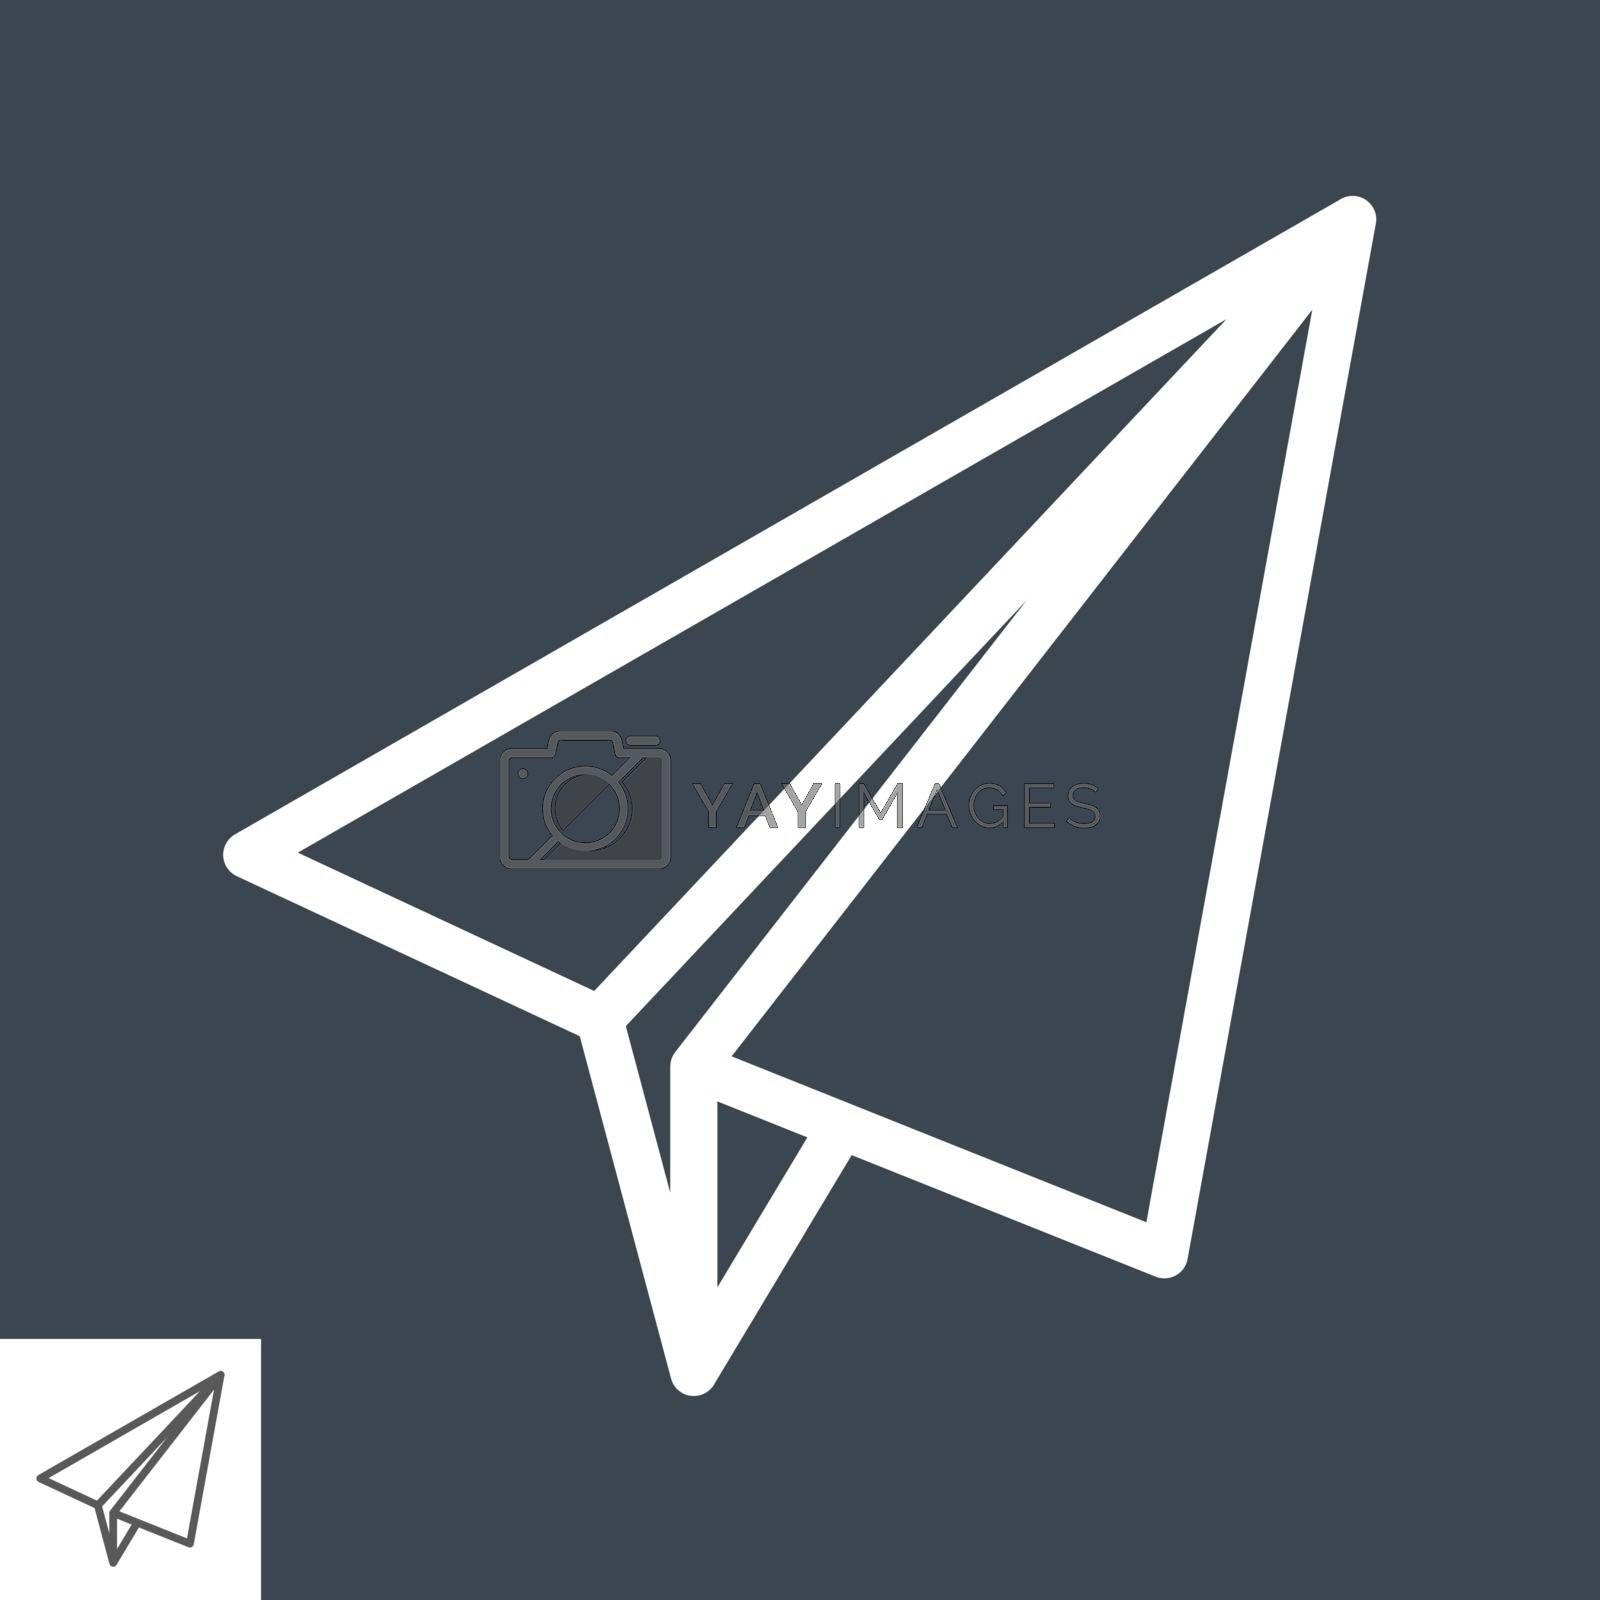 Paper Airplane Thin Line Vector Icon. Flat icon isolated on the black background. Editable EPS file. Vector illustration.